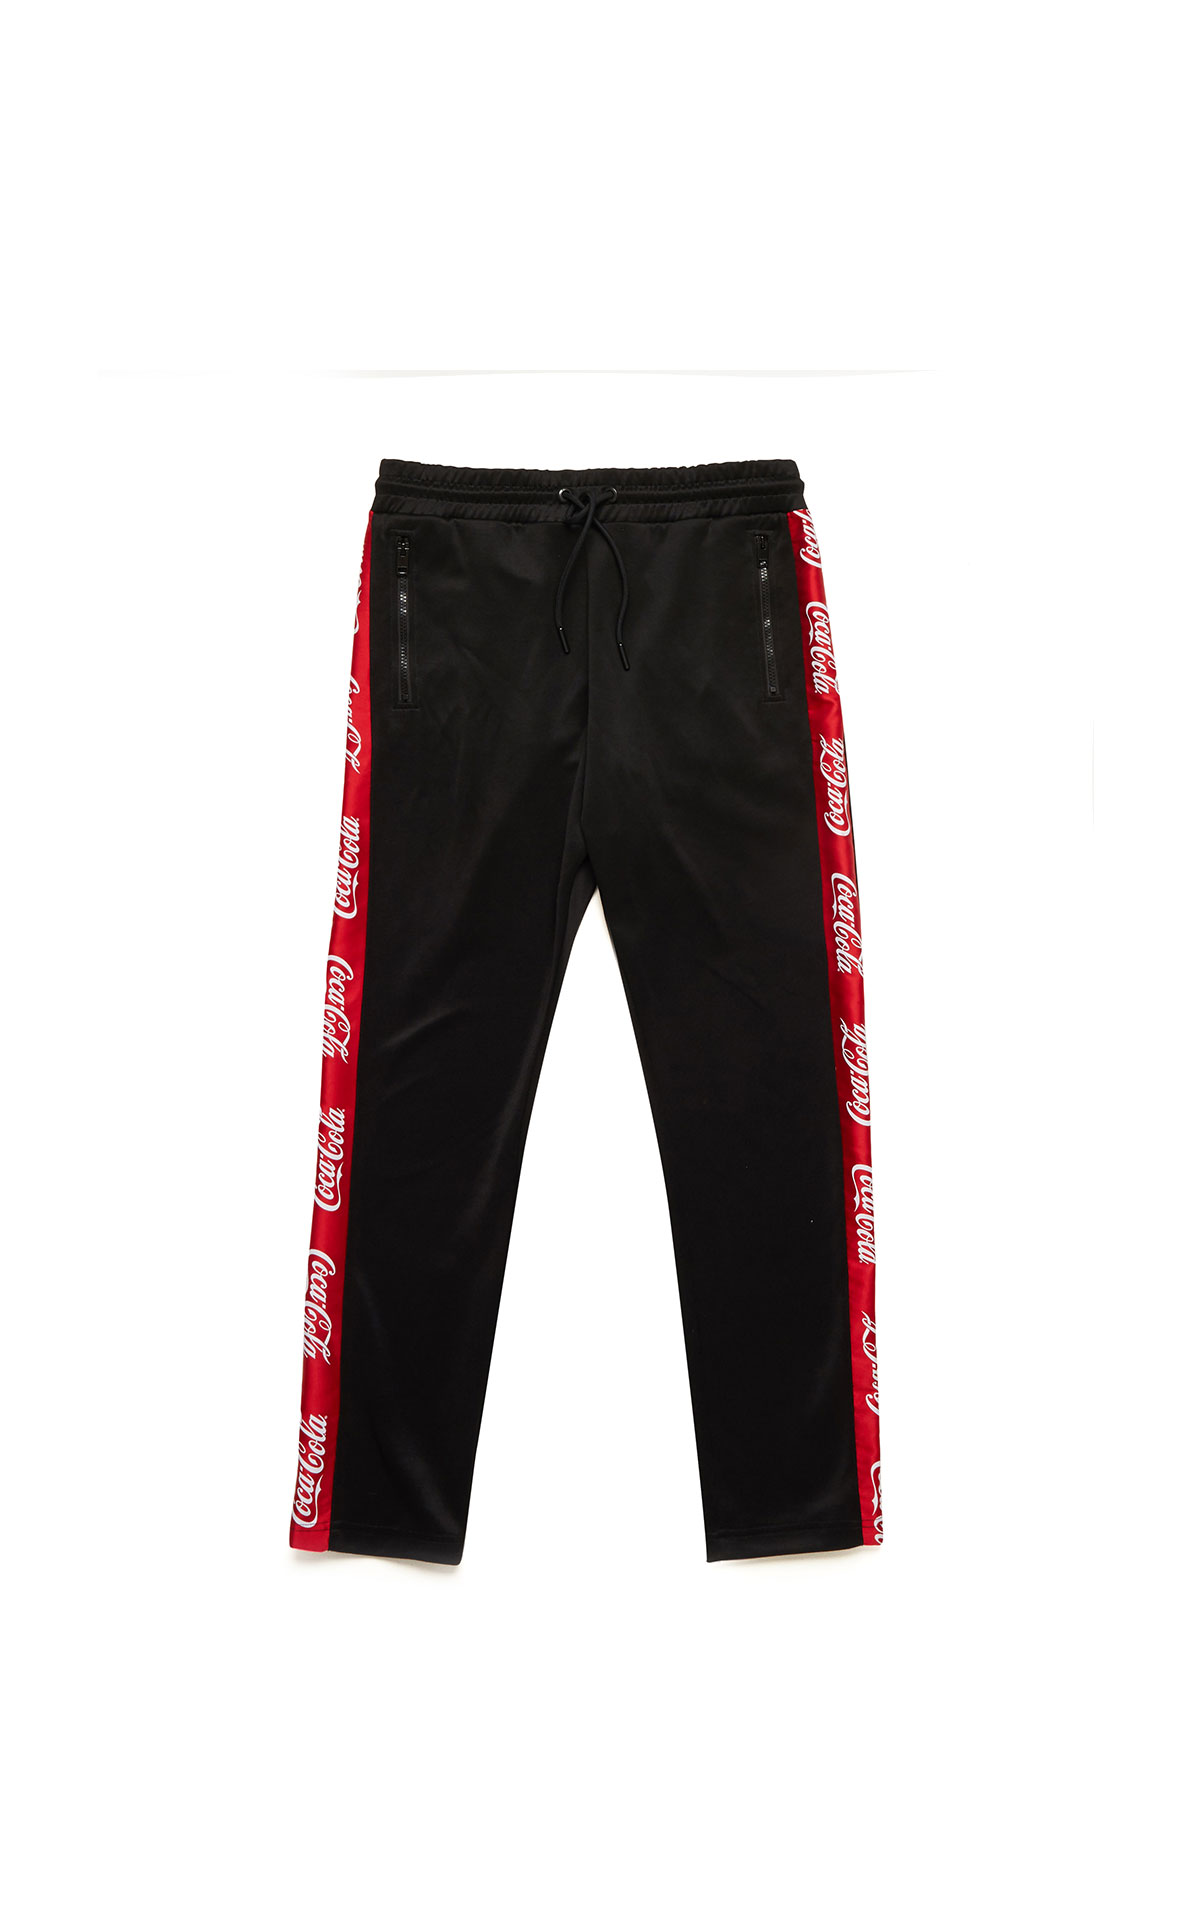 Diesel x coca cola trousers at The Bicester Village Shopping Collection